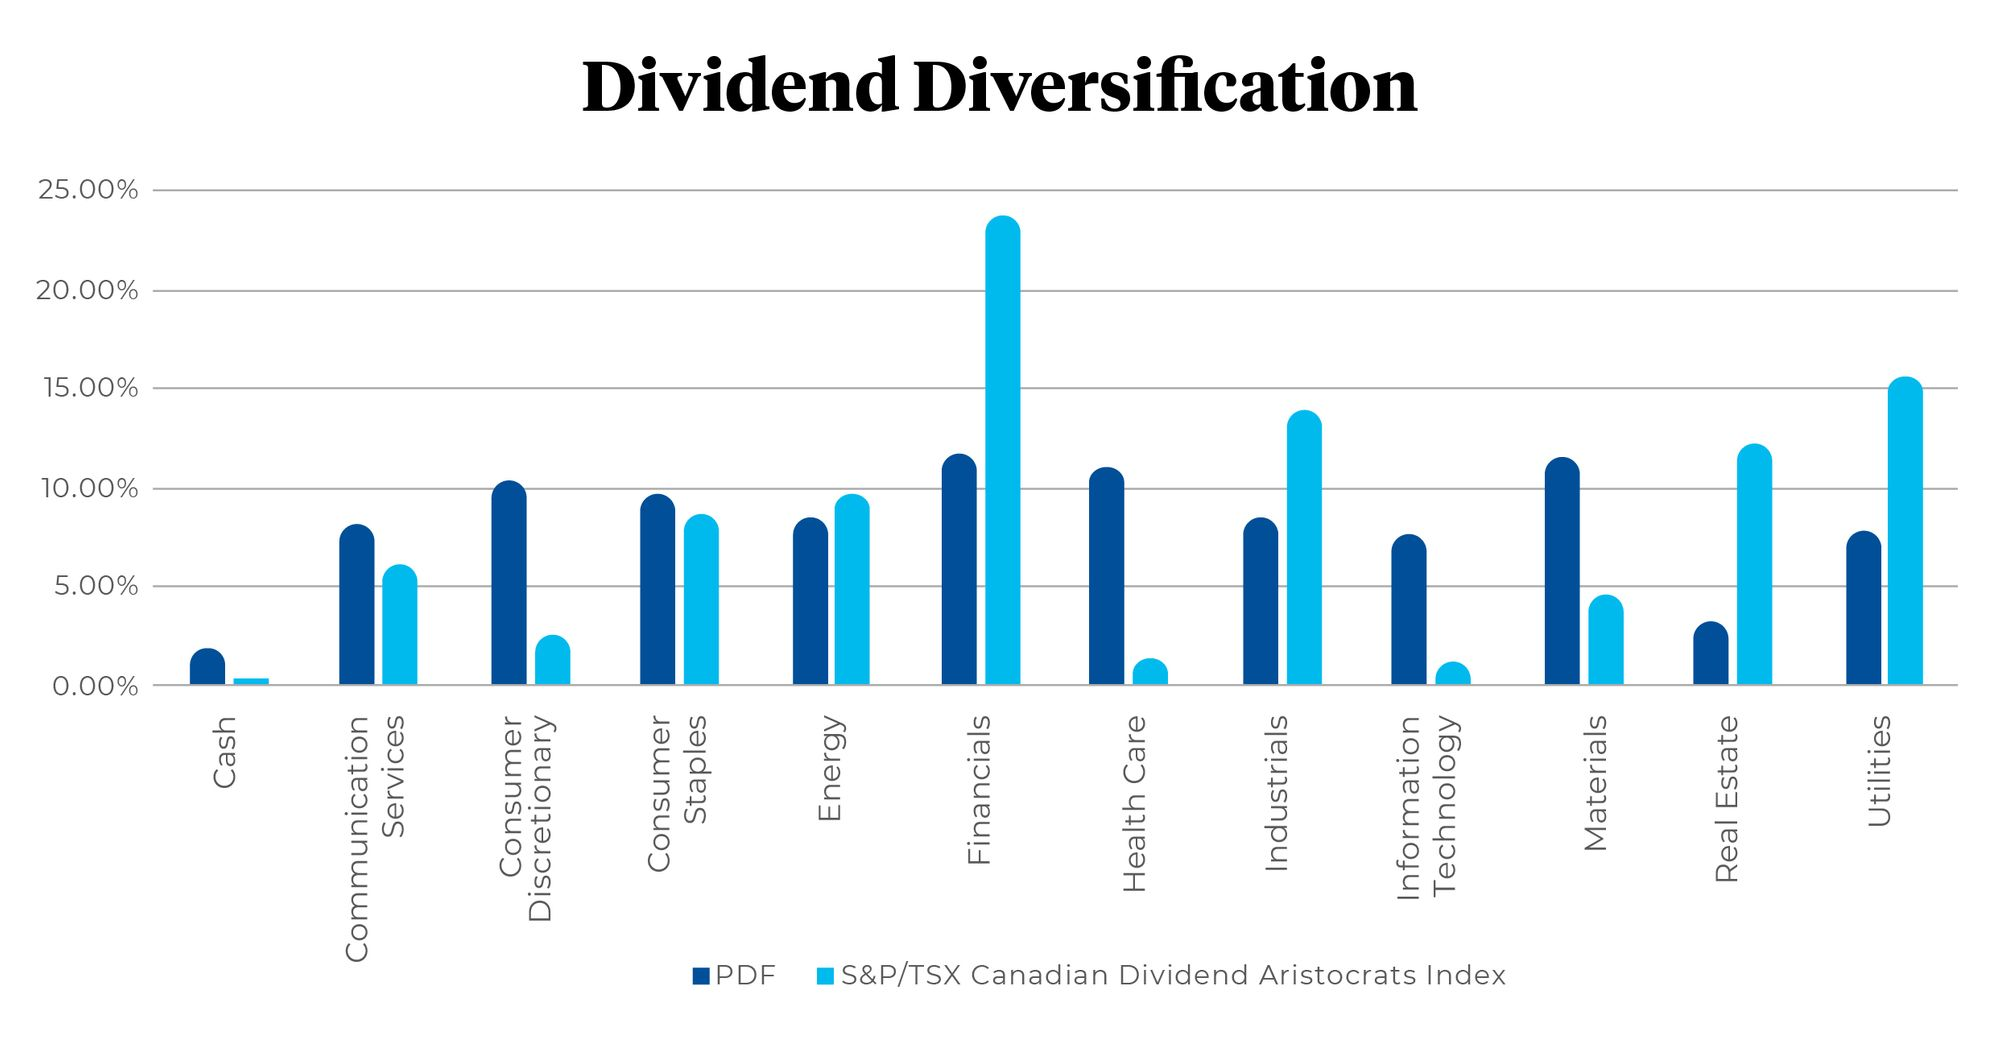 Chart of Dividend Diversification